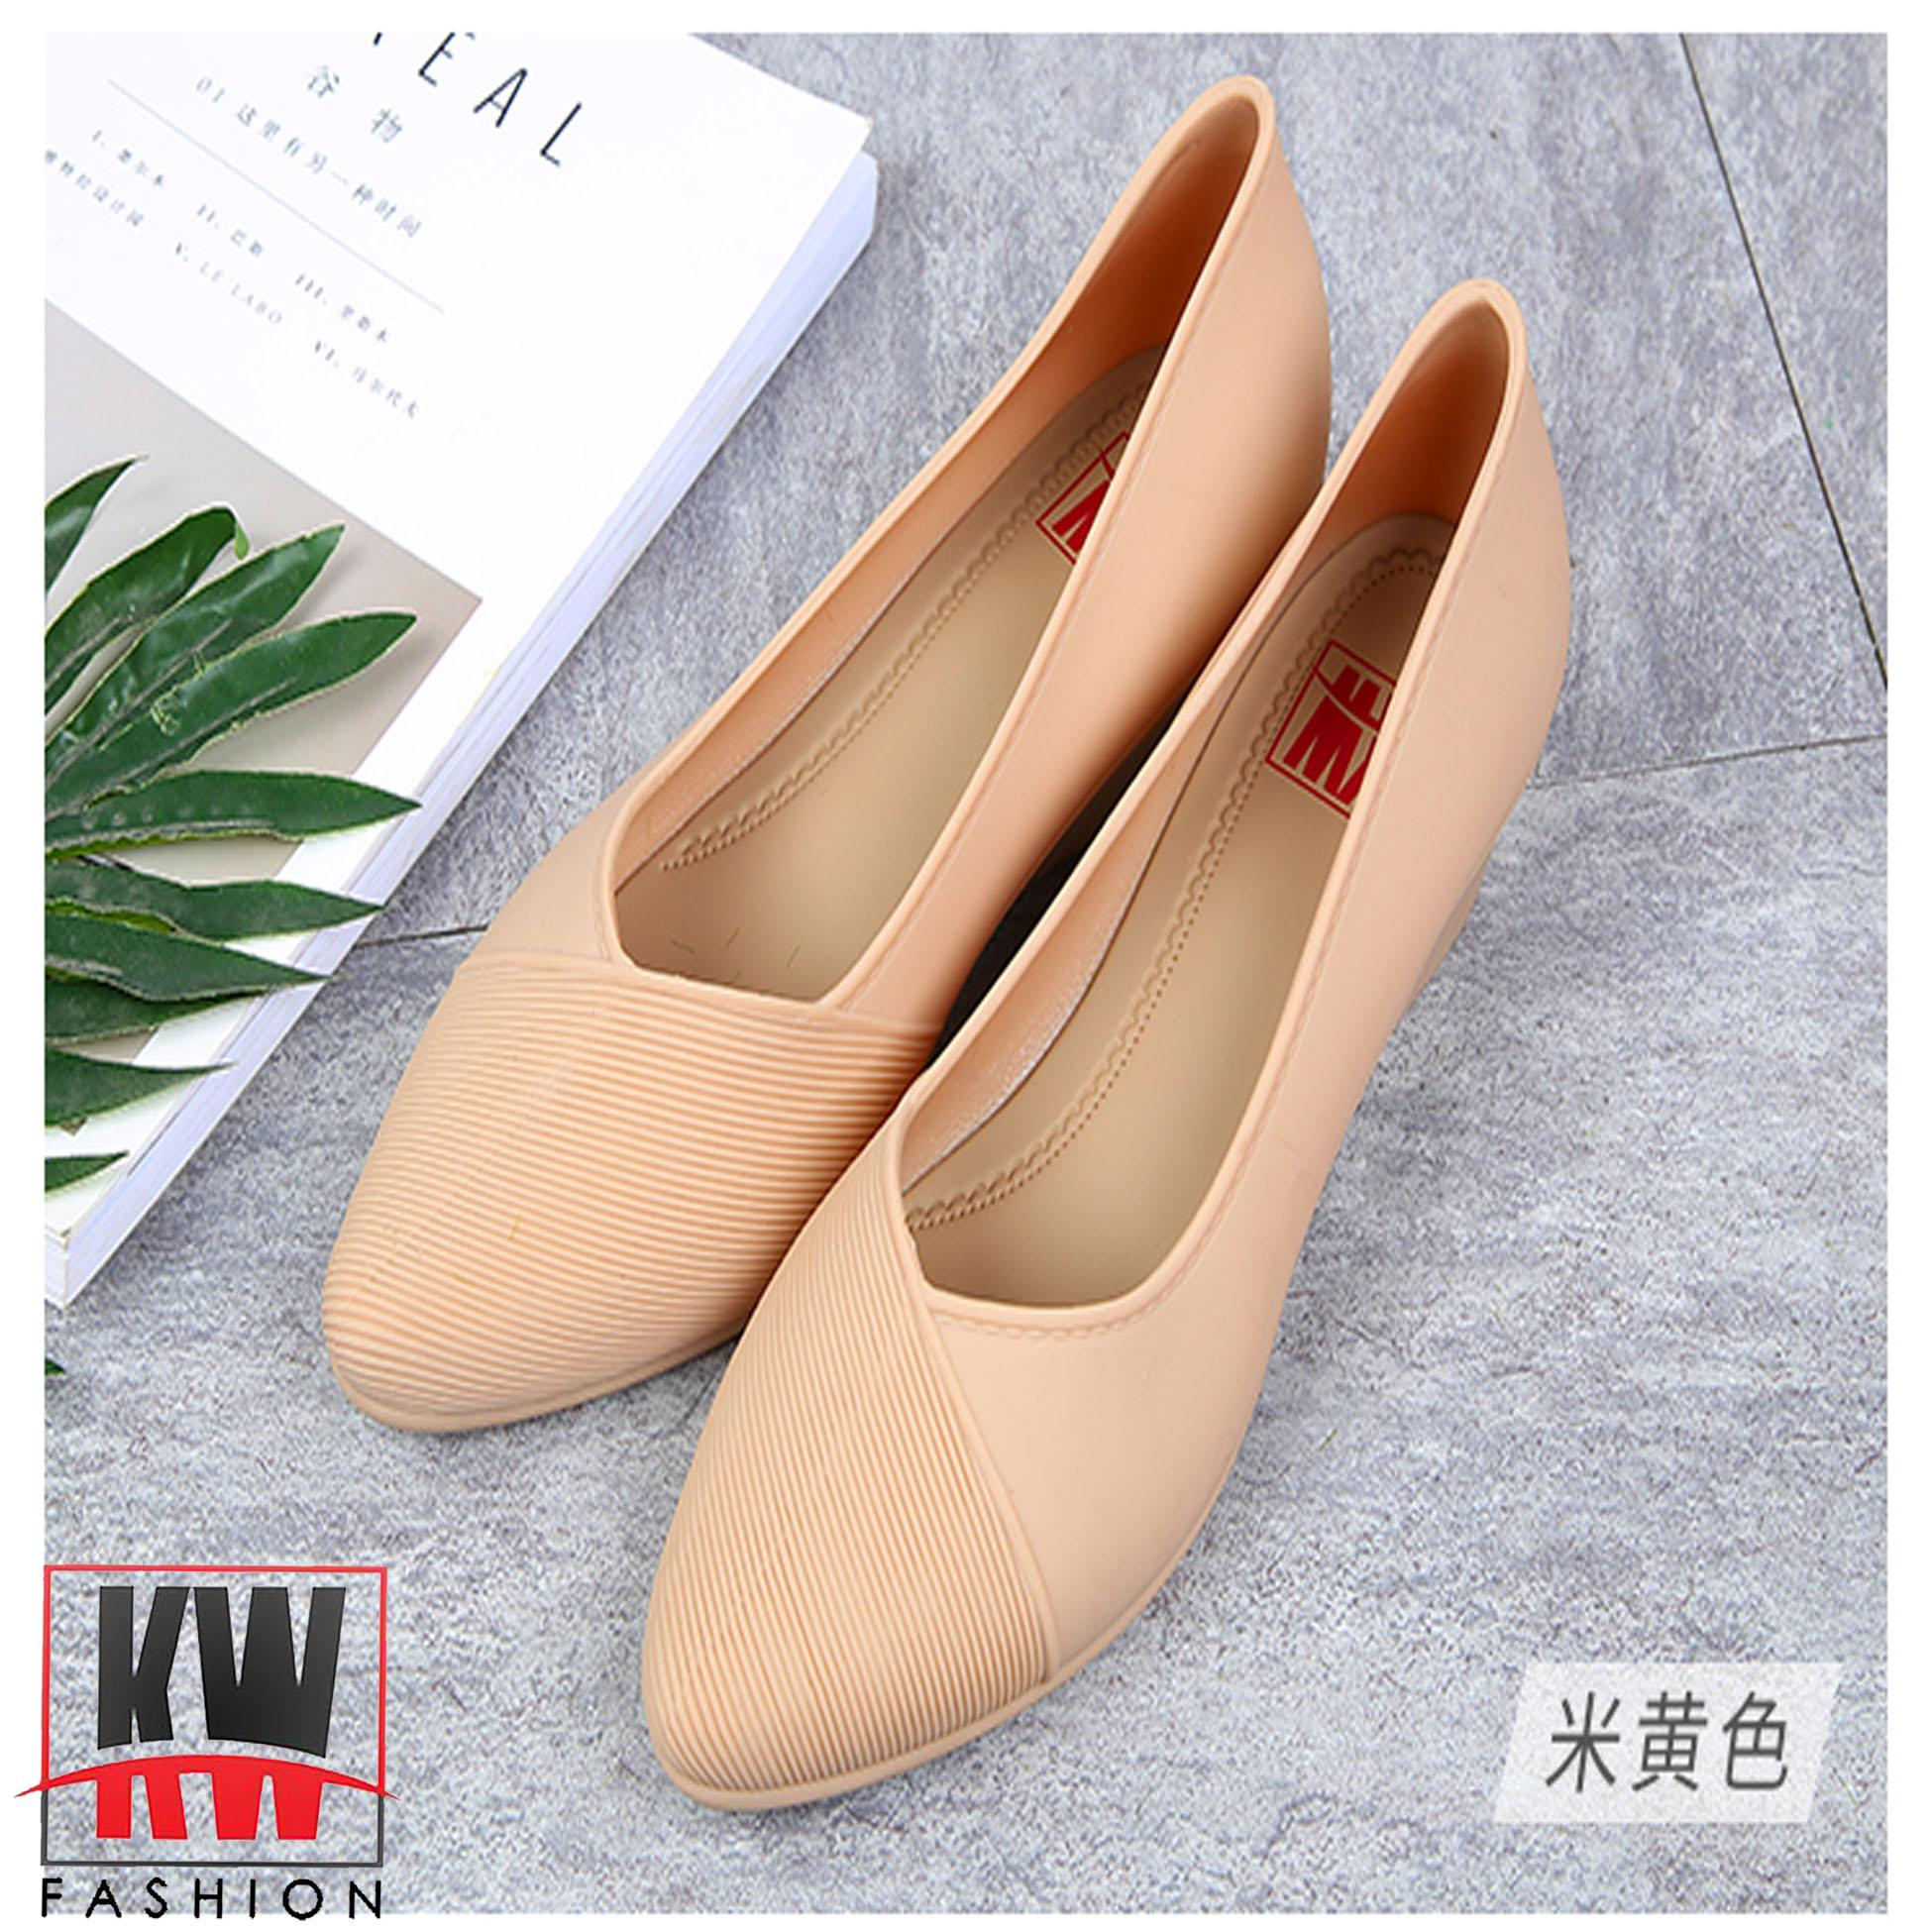 8b64a11fa651 Flat Shoes for Women for sale - Womens Flats online brands